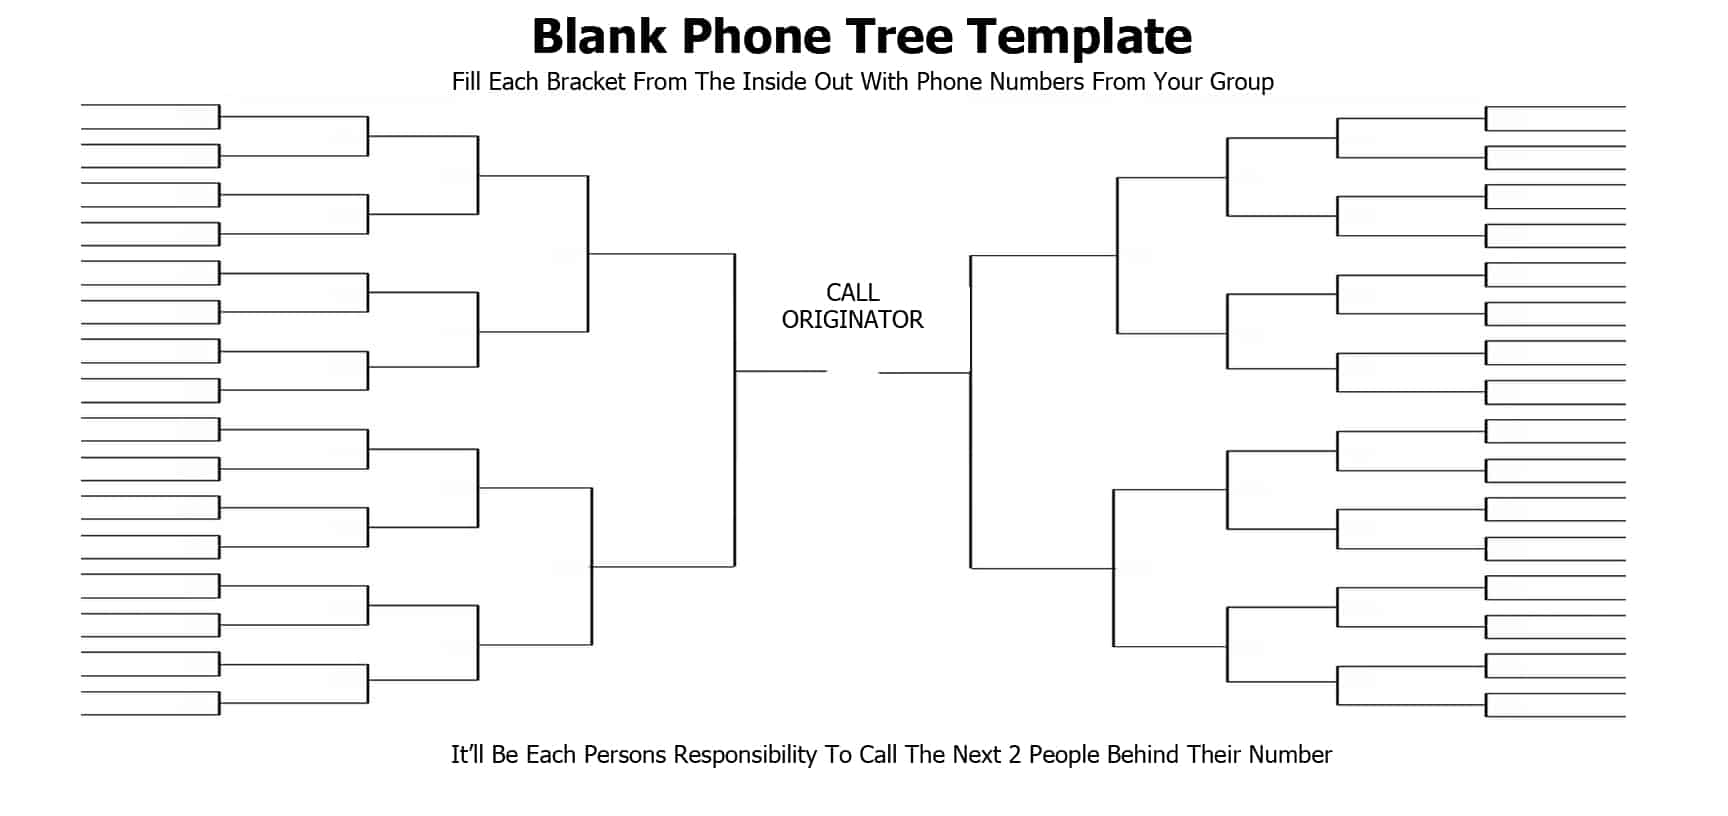 phone tree template image 1